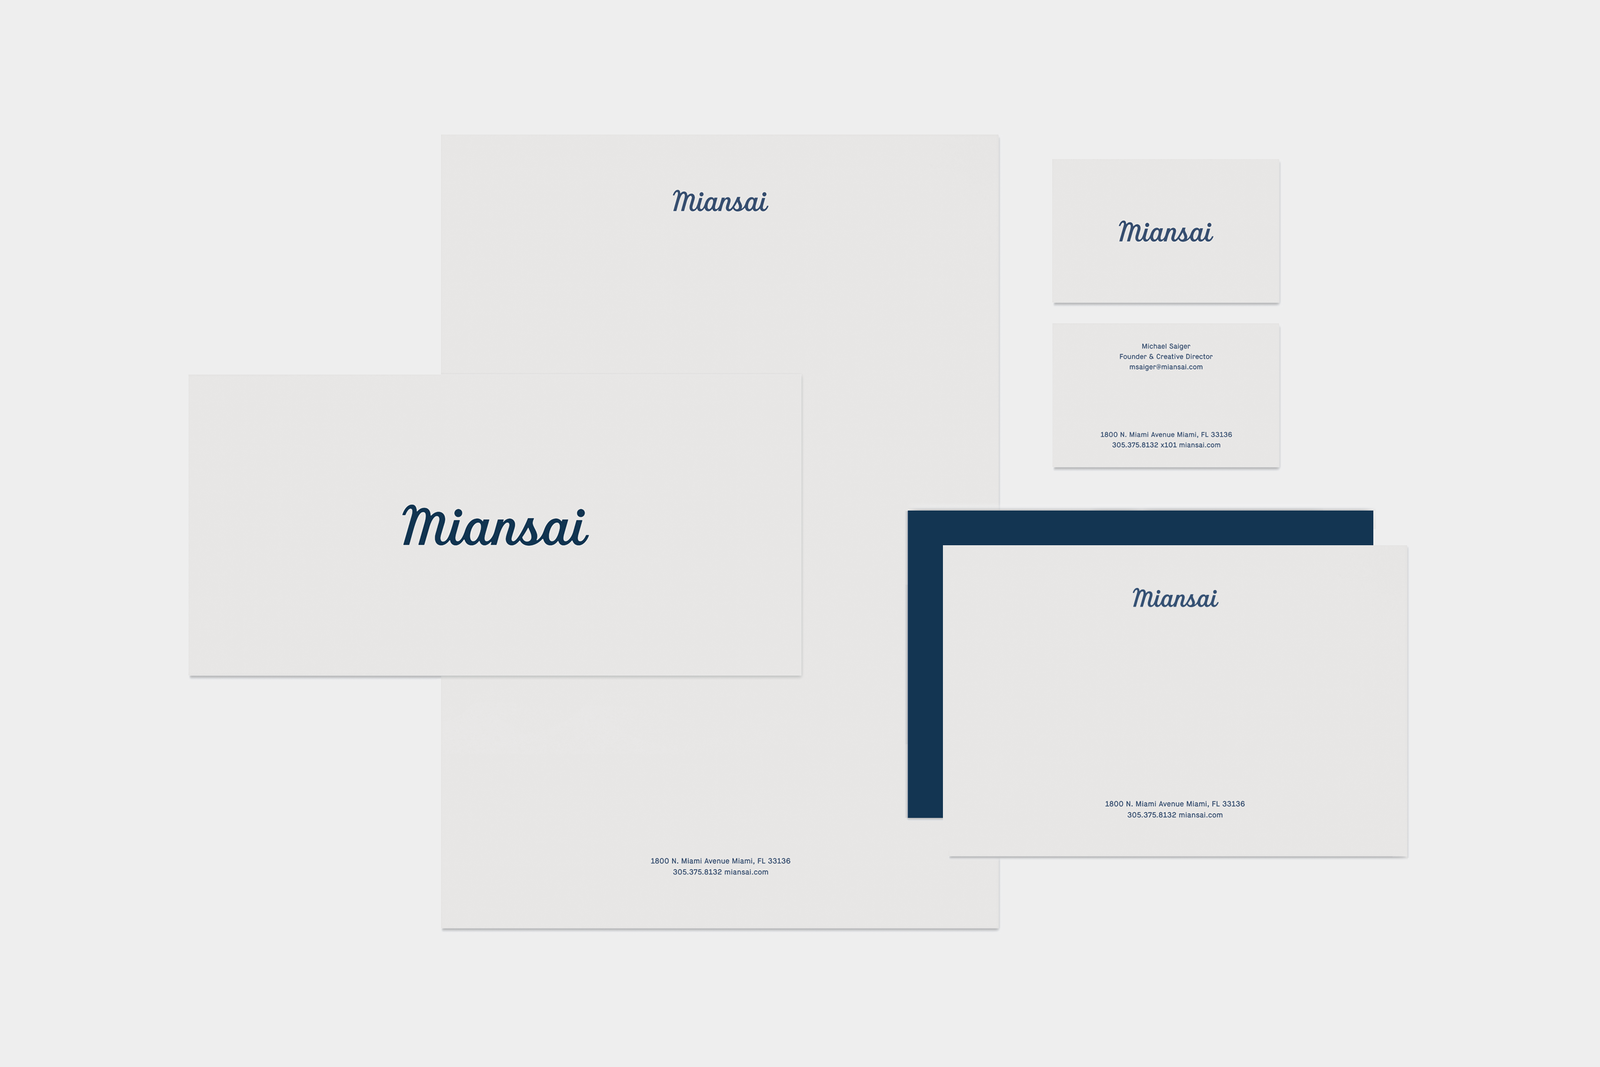 Miansai Identity & Packaging